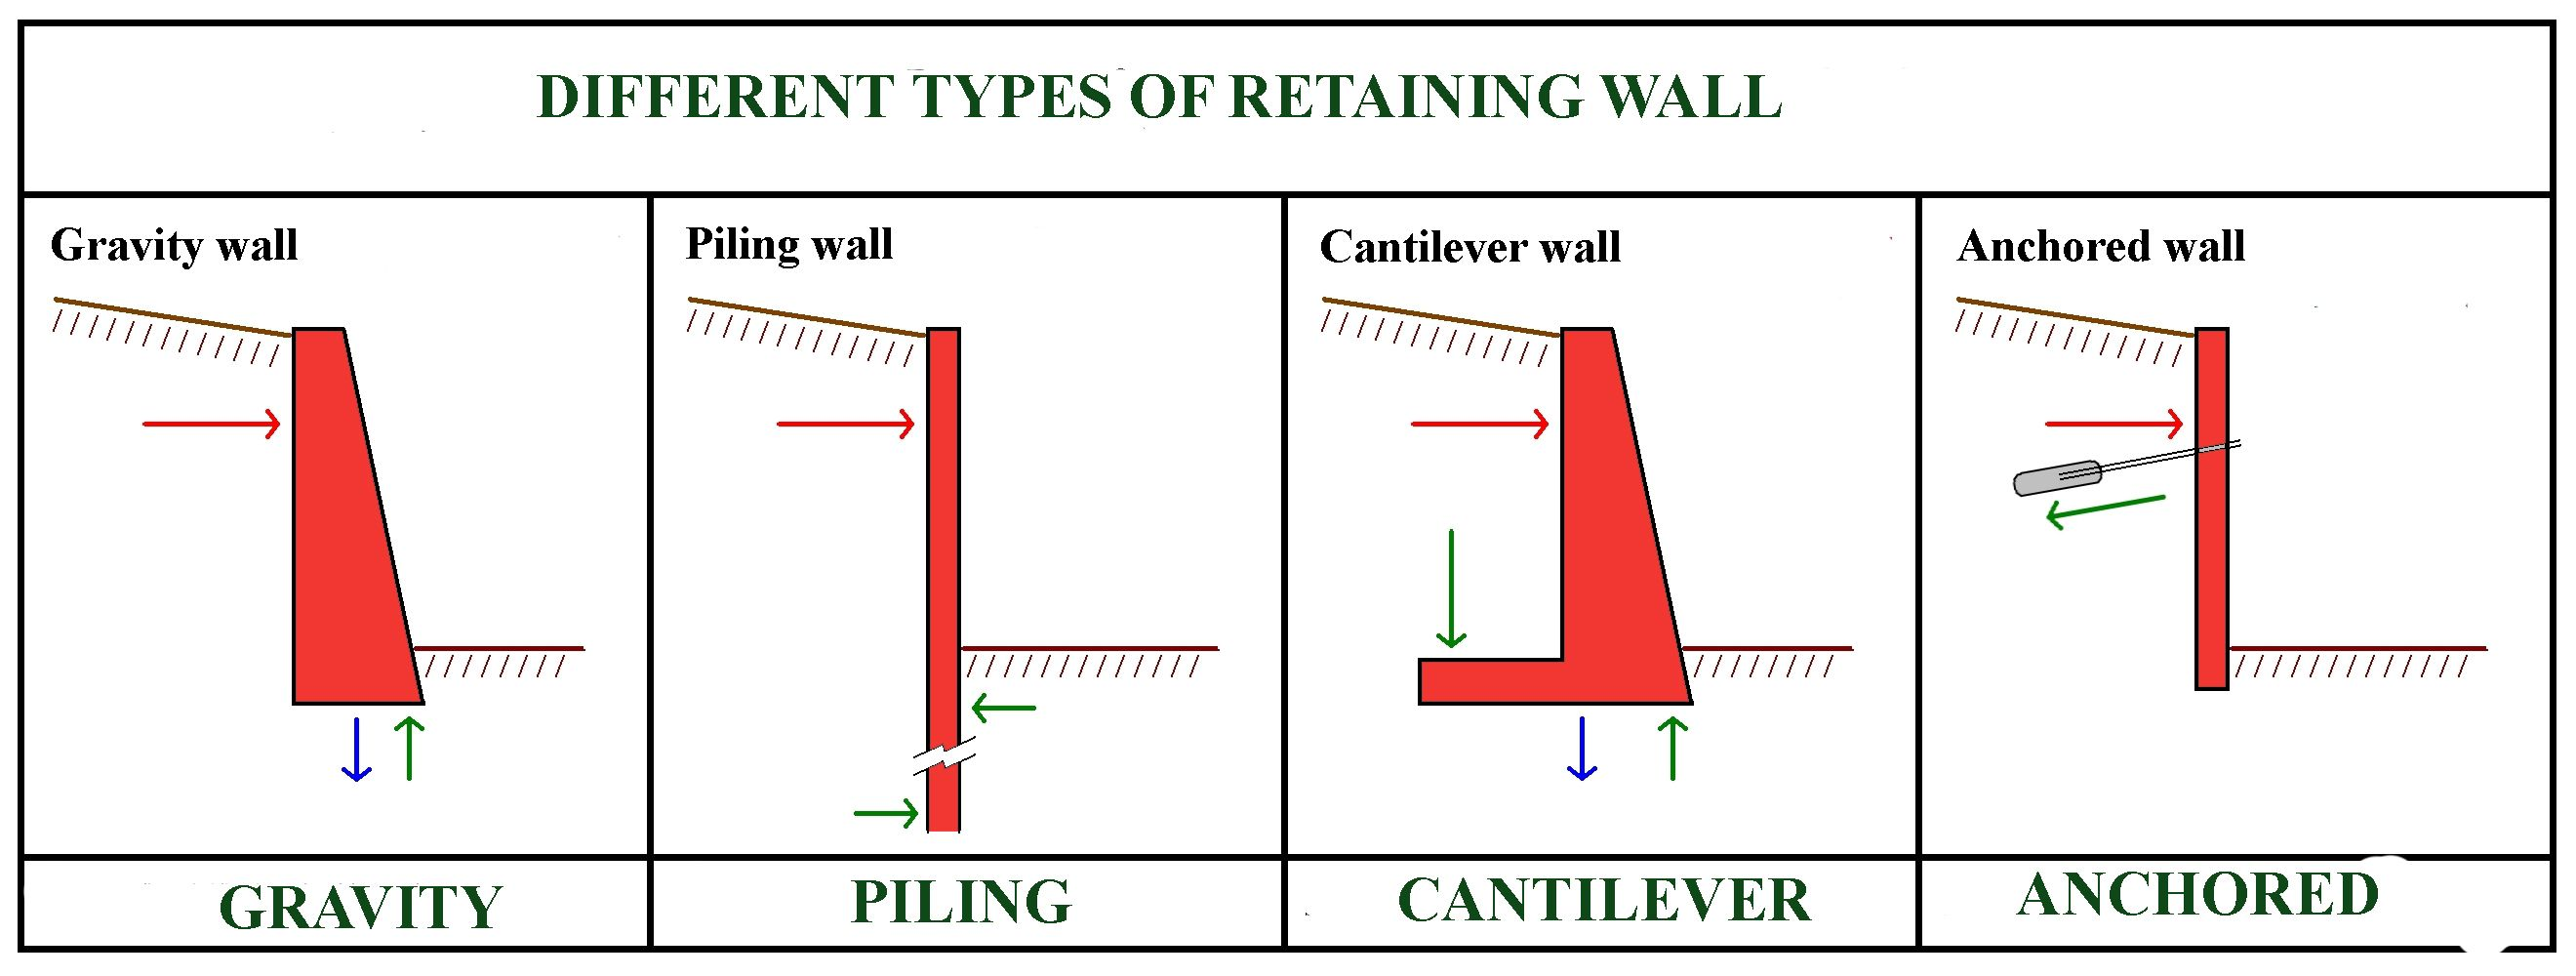 diy retaining walls flush up to an existing fence yahoo on types of structural walls id=74839